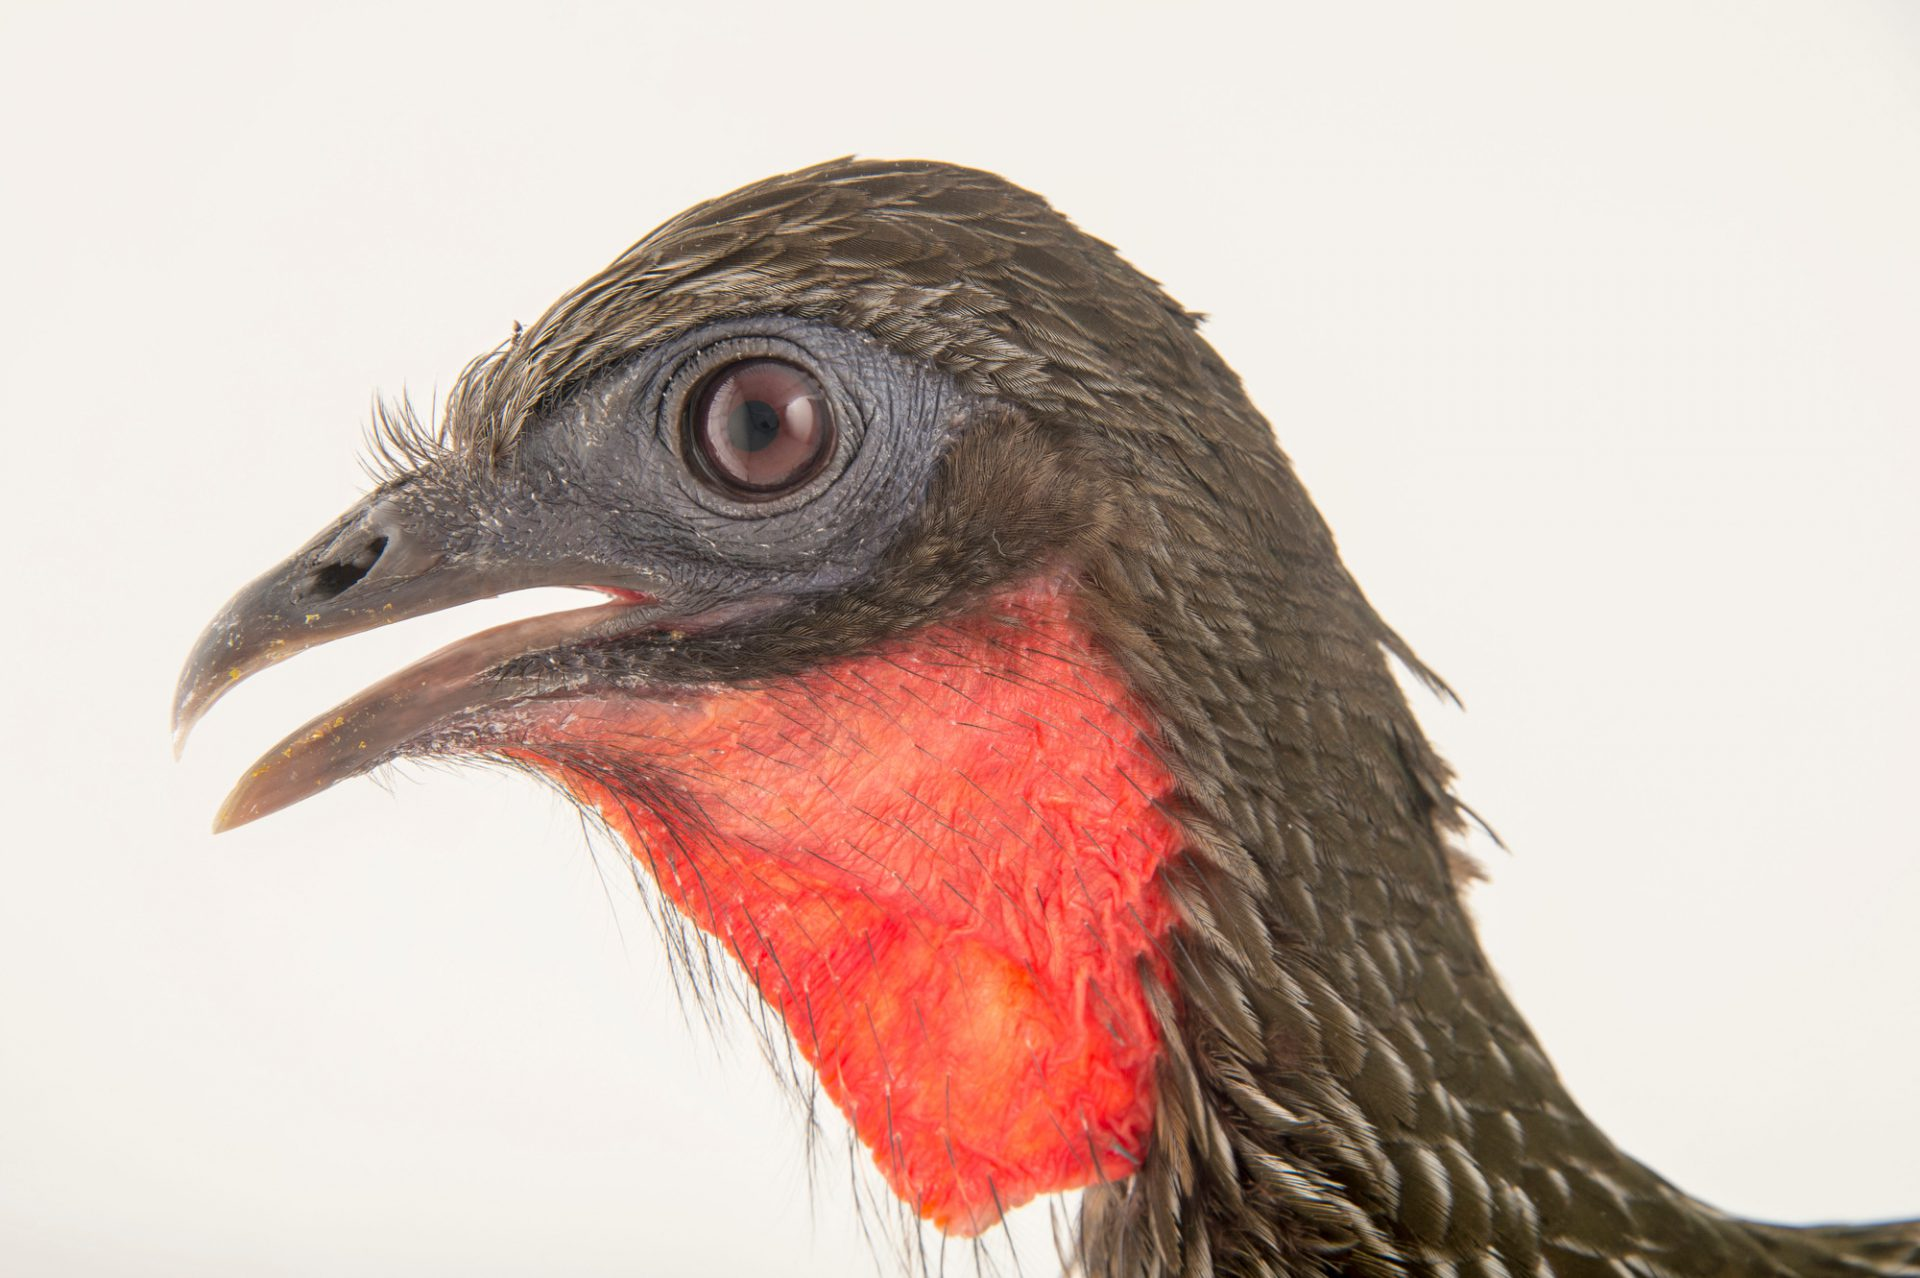 Picture of an endangered Cauca guan (Penelope perspicax) at the Cali Zoo in Colombia.